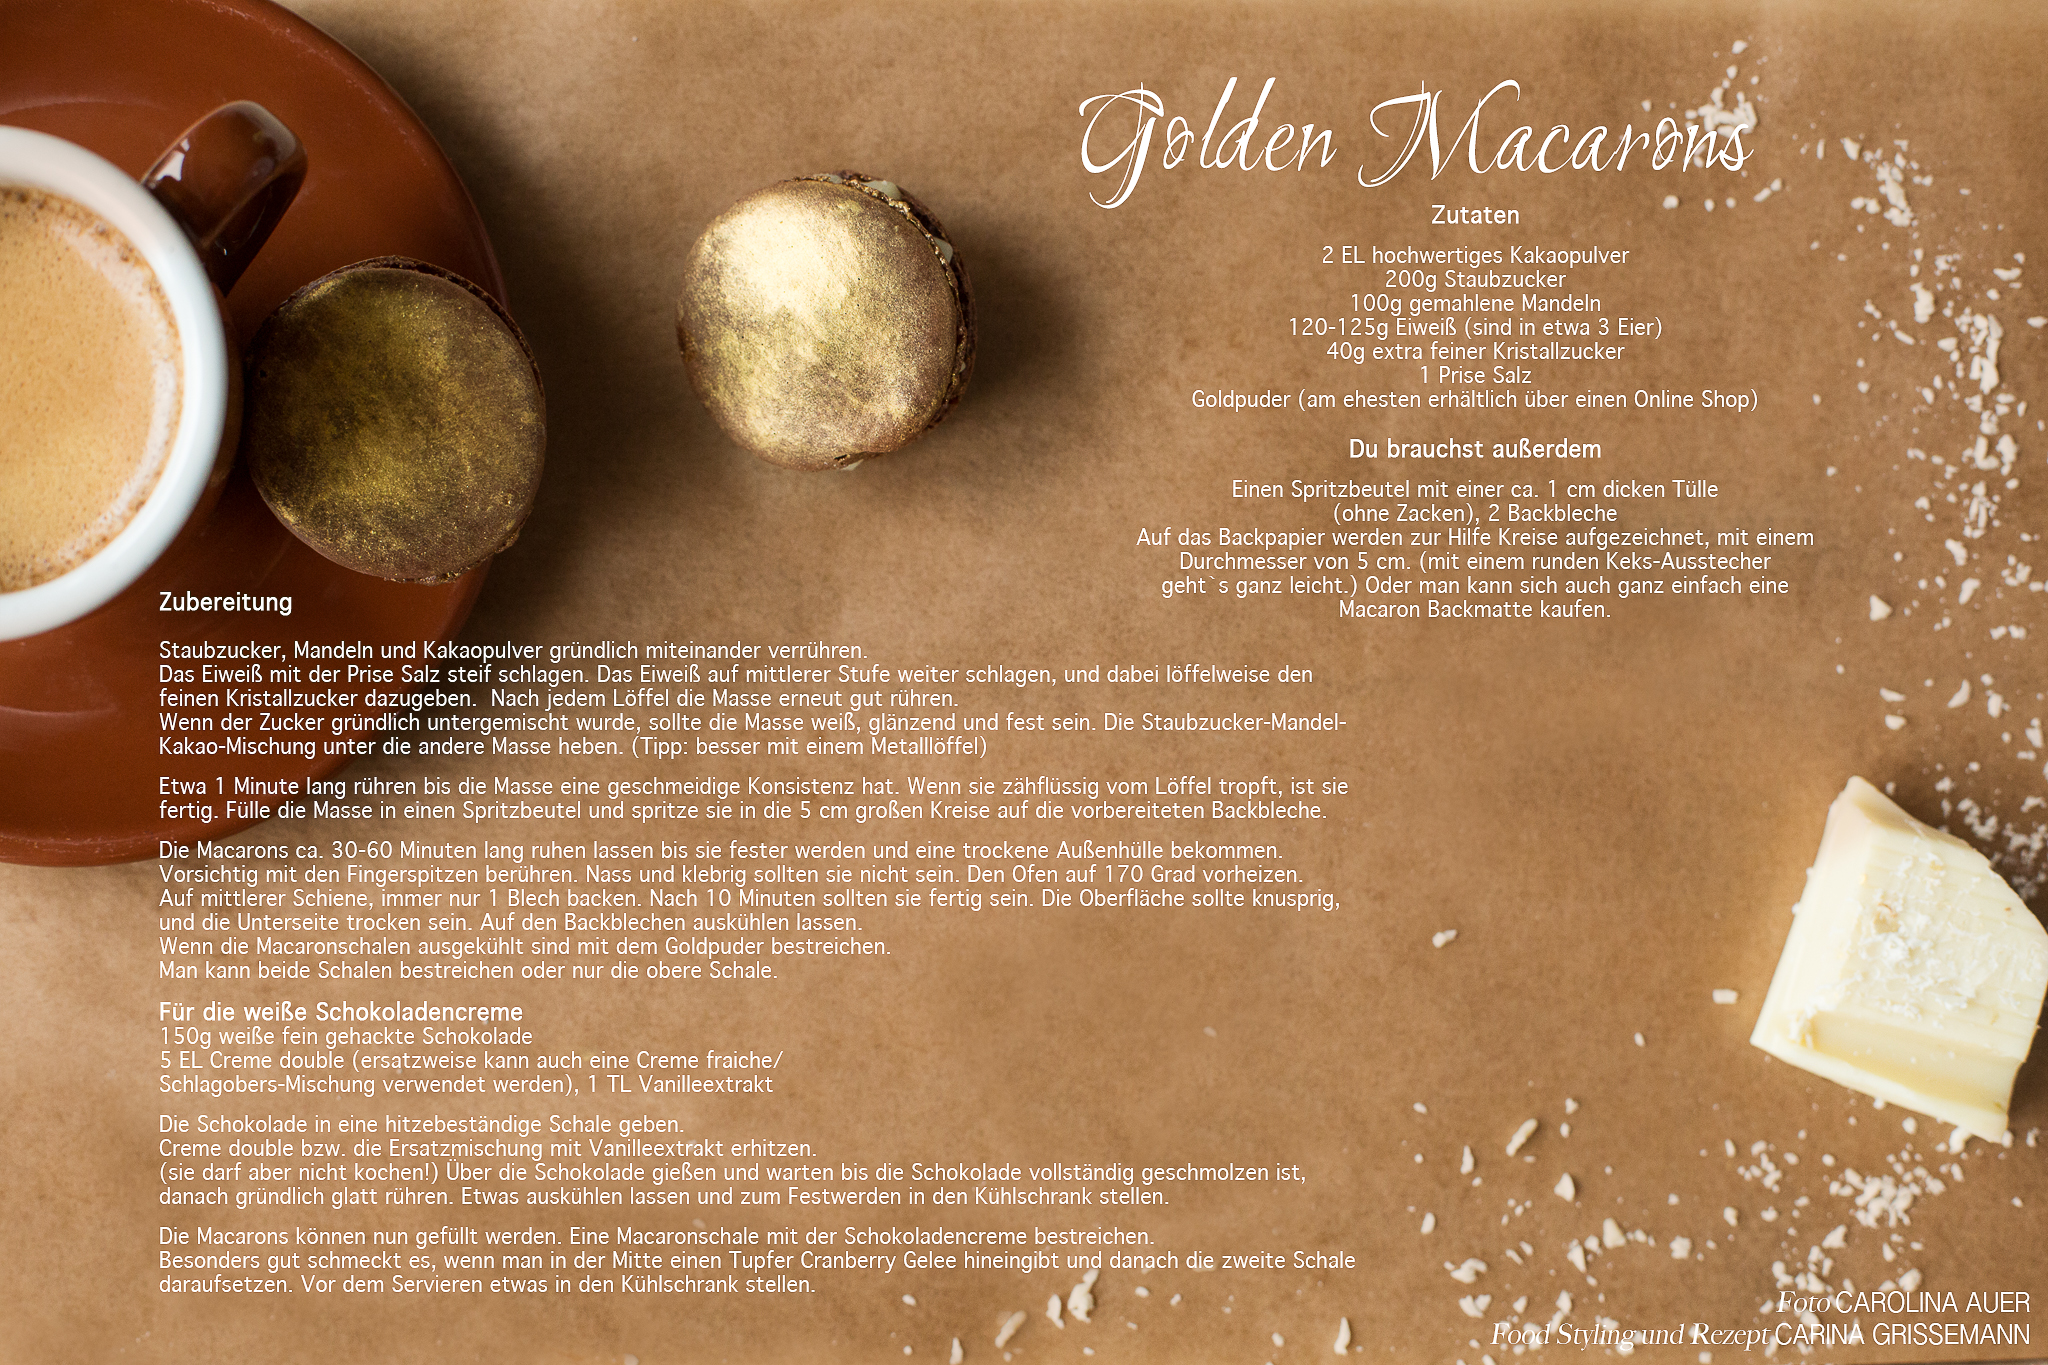 golden_macarons_rezept_smallo